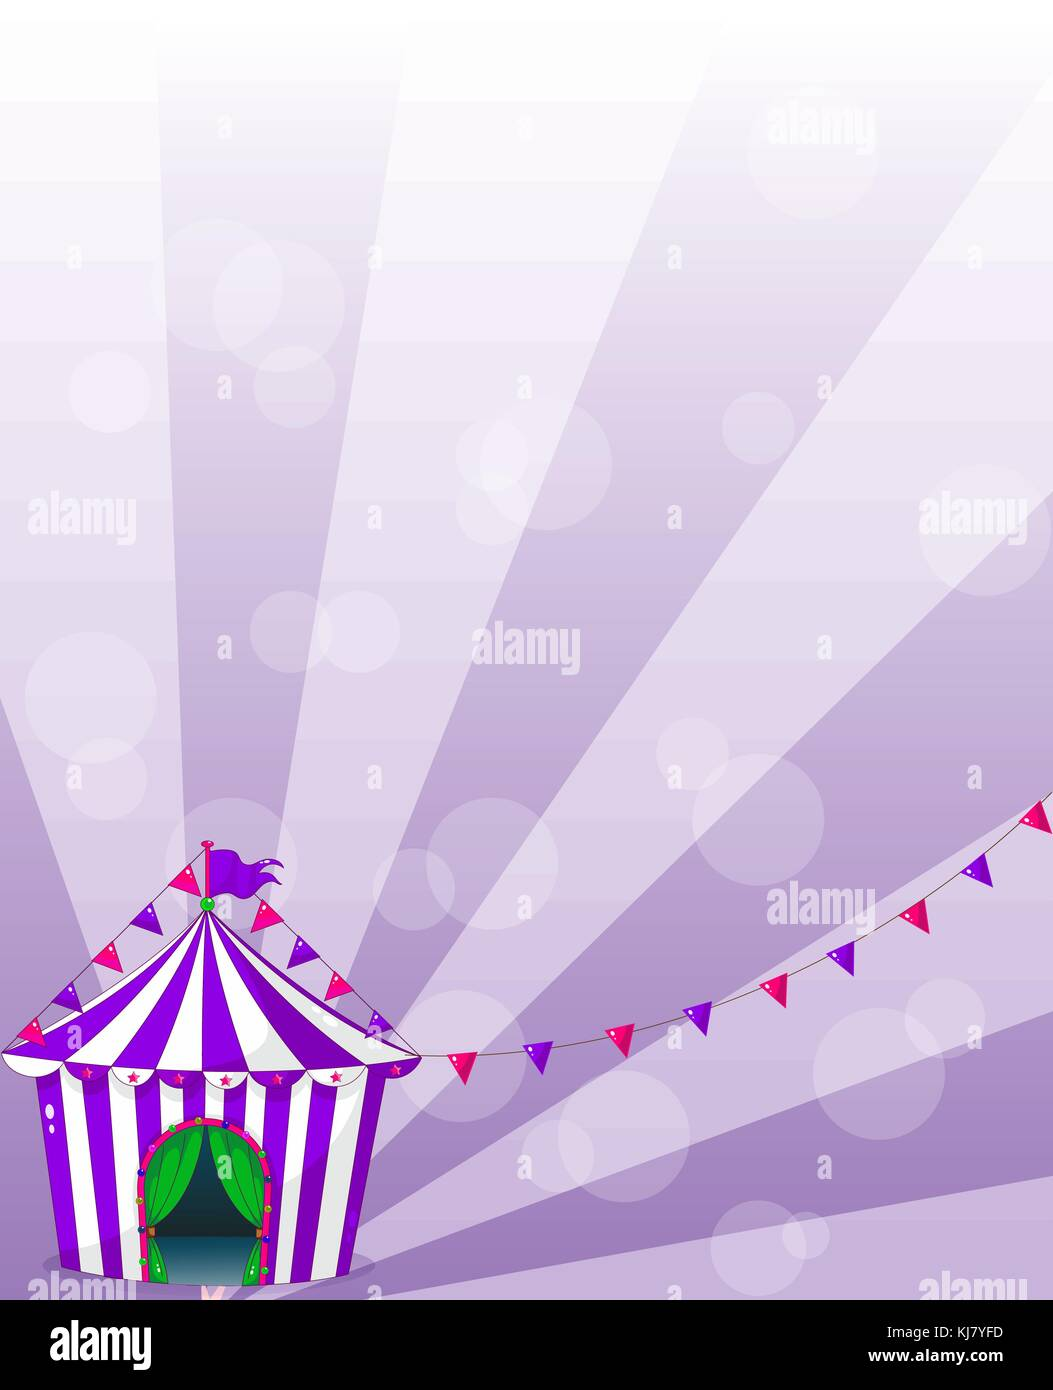 Illustration of a violet circus tent - Stock Vector